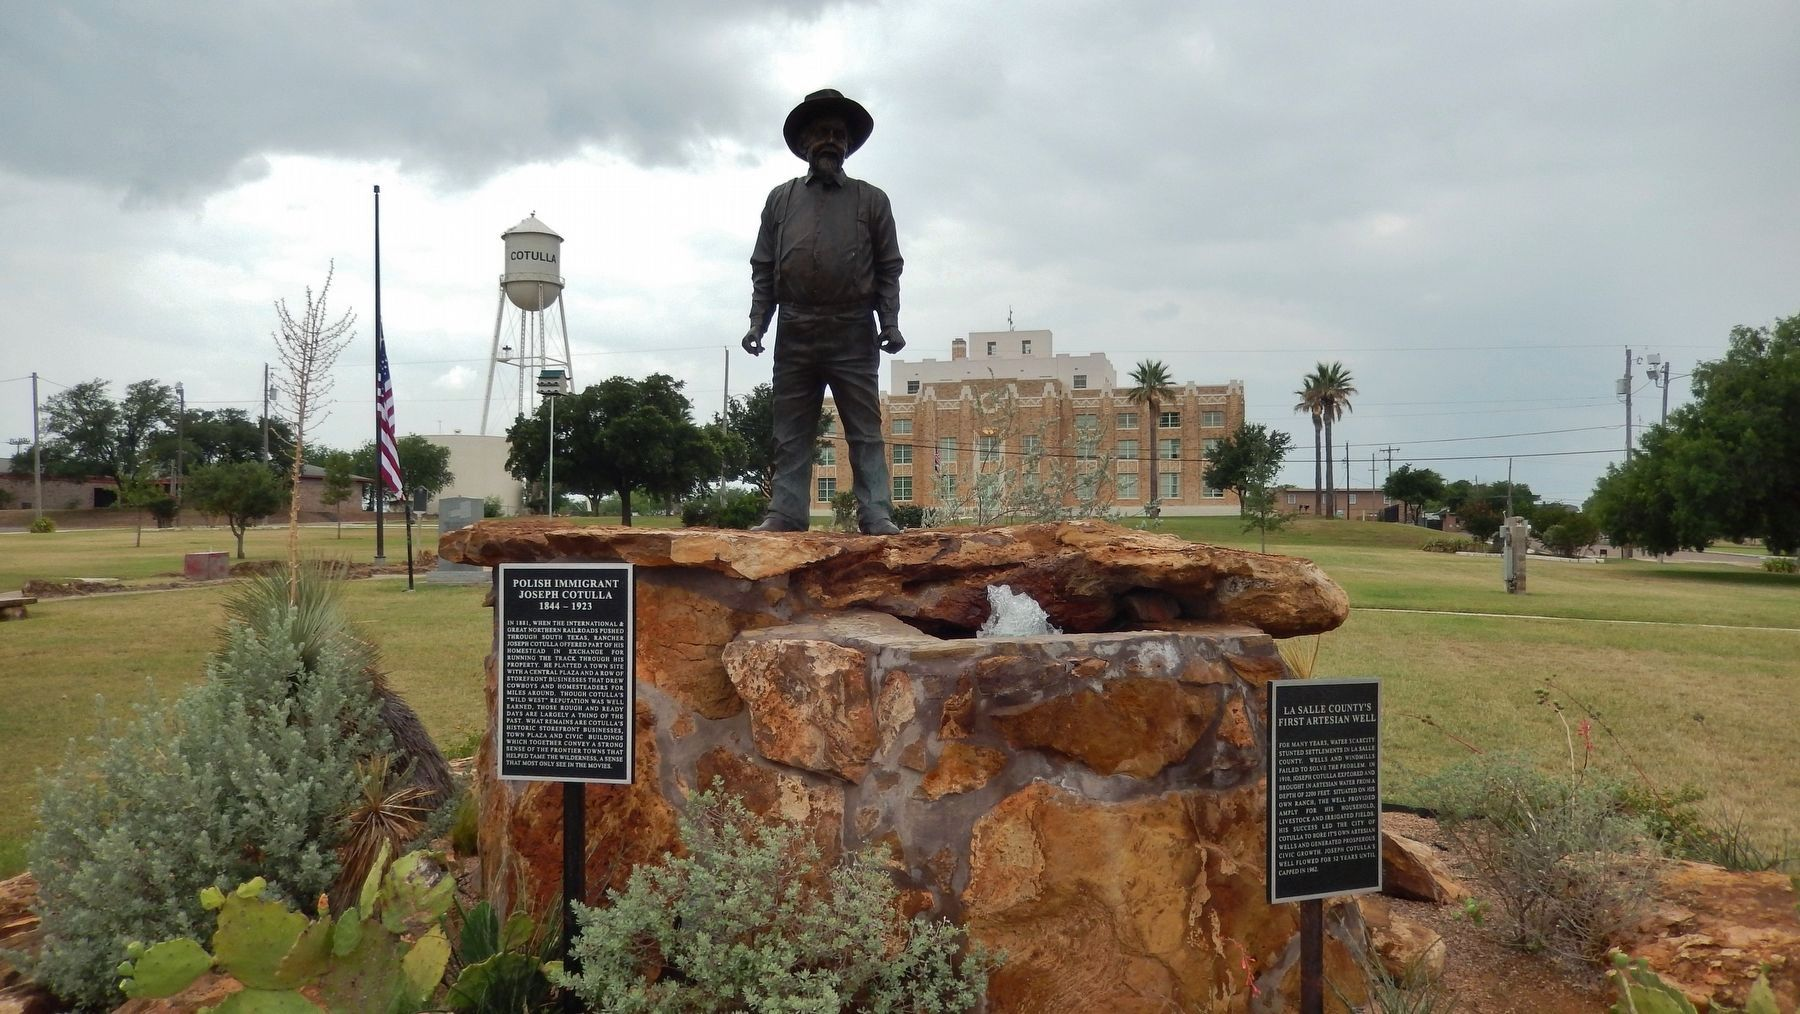 Joseph Cotulla Marker (<i>left marker; Cotulla City Park, La Salle County Courthouse background</i>) image. Click for full size.